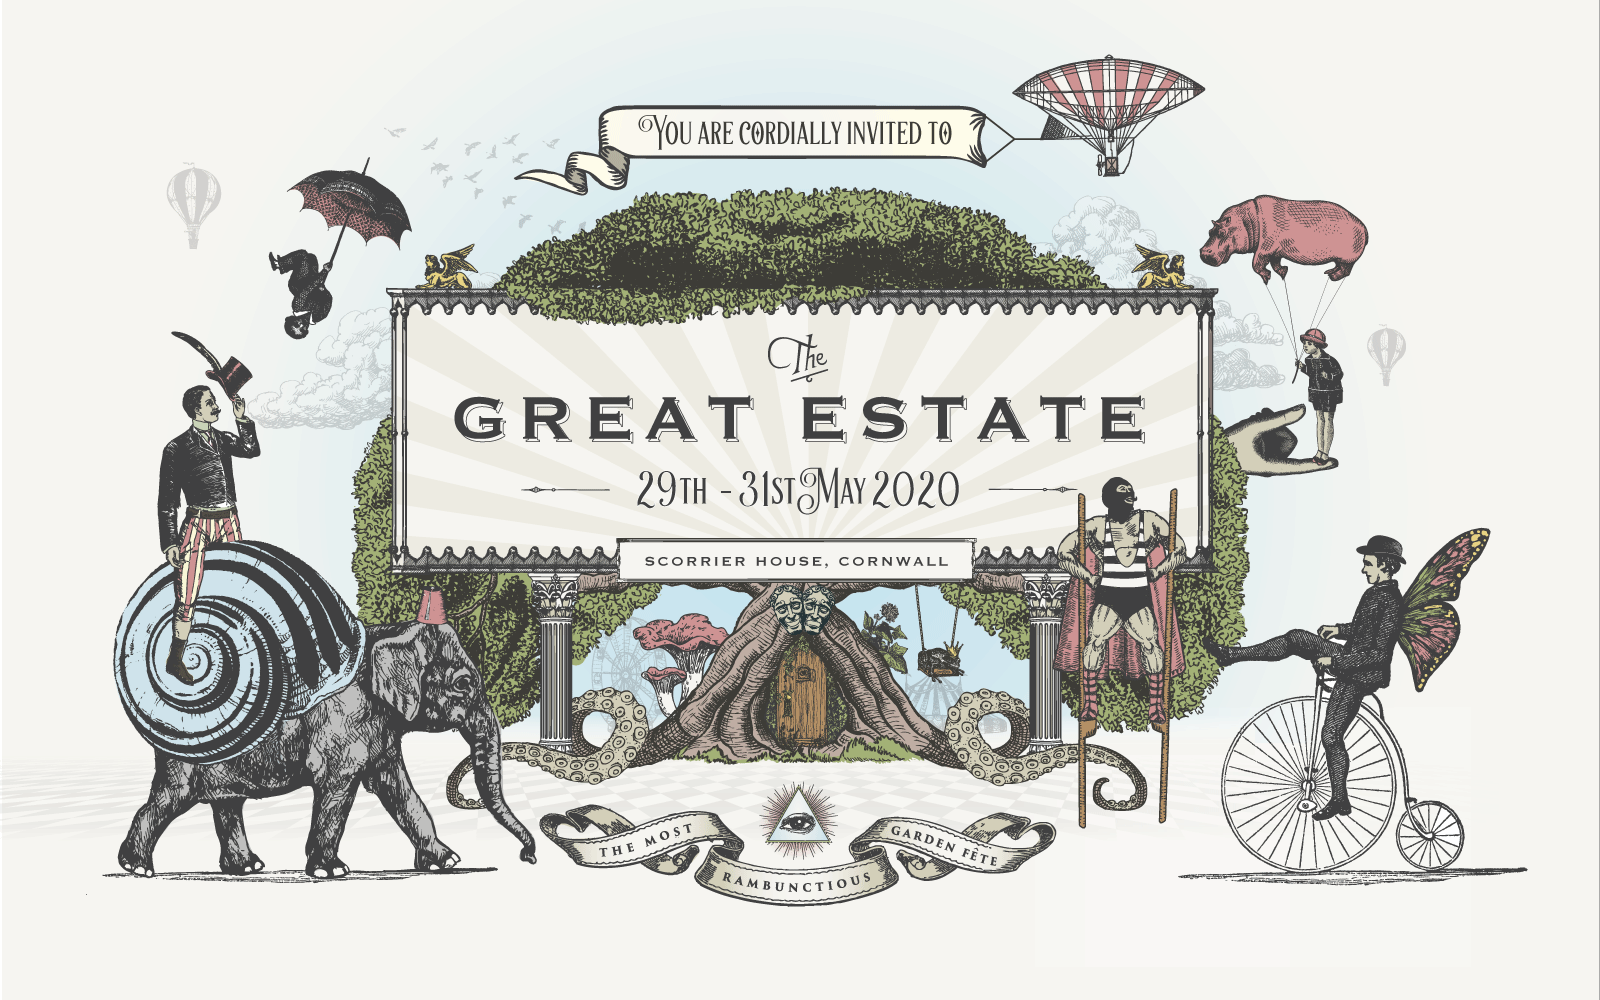 The Great estate Festival 2020